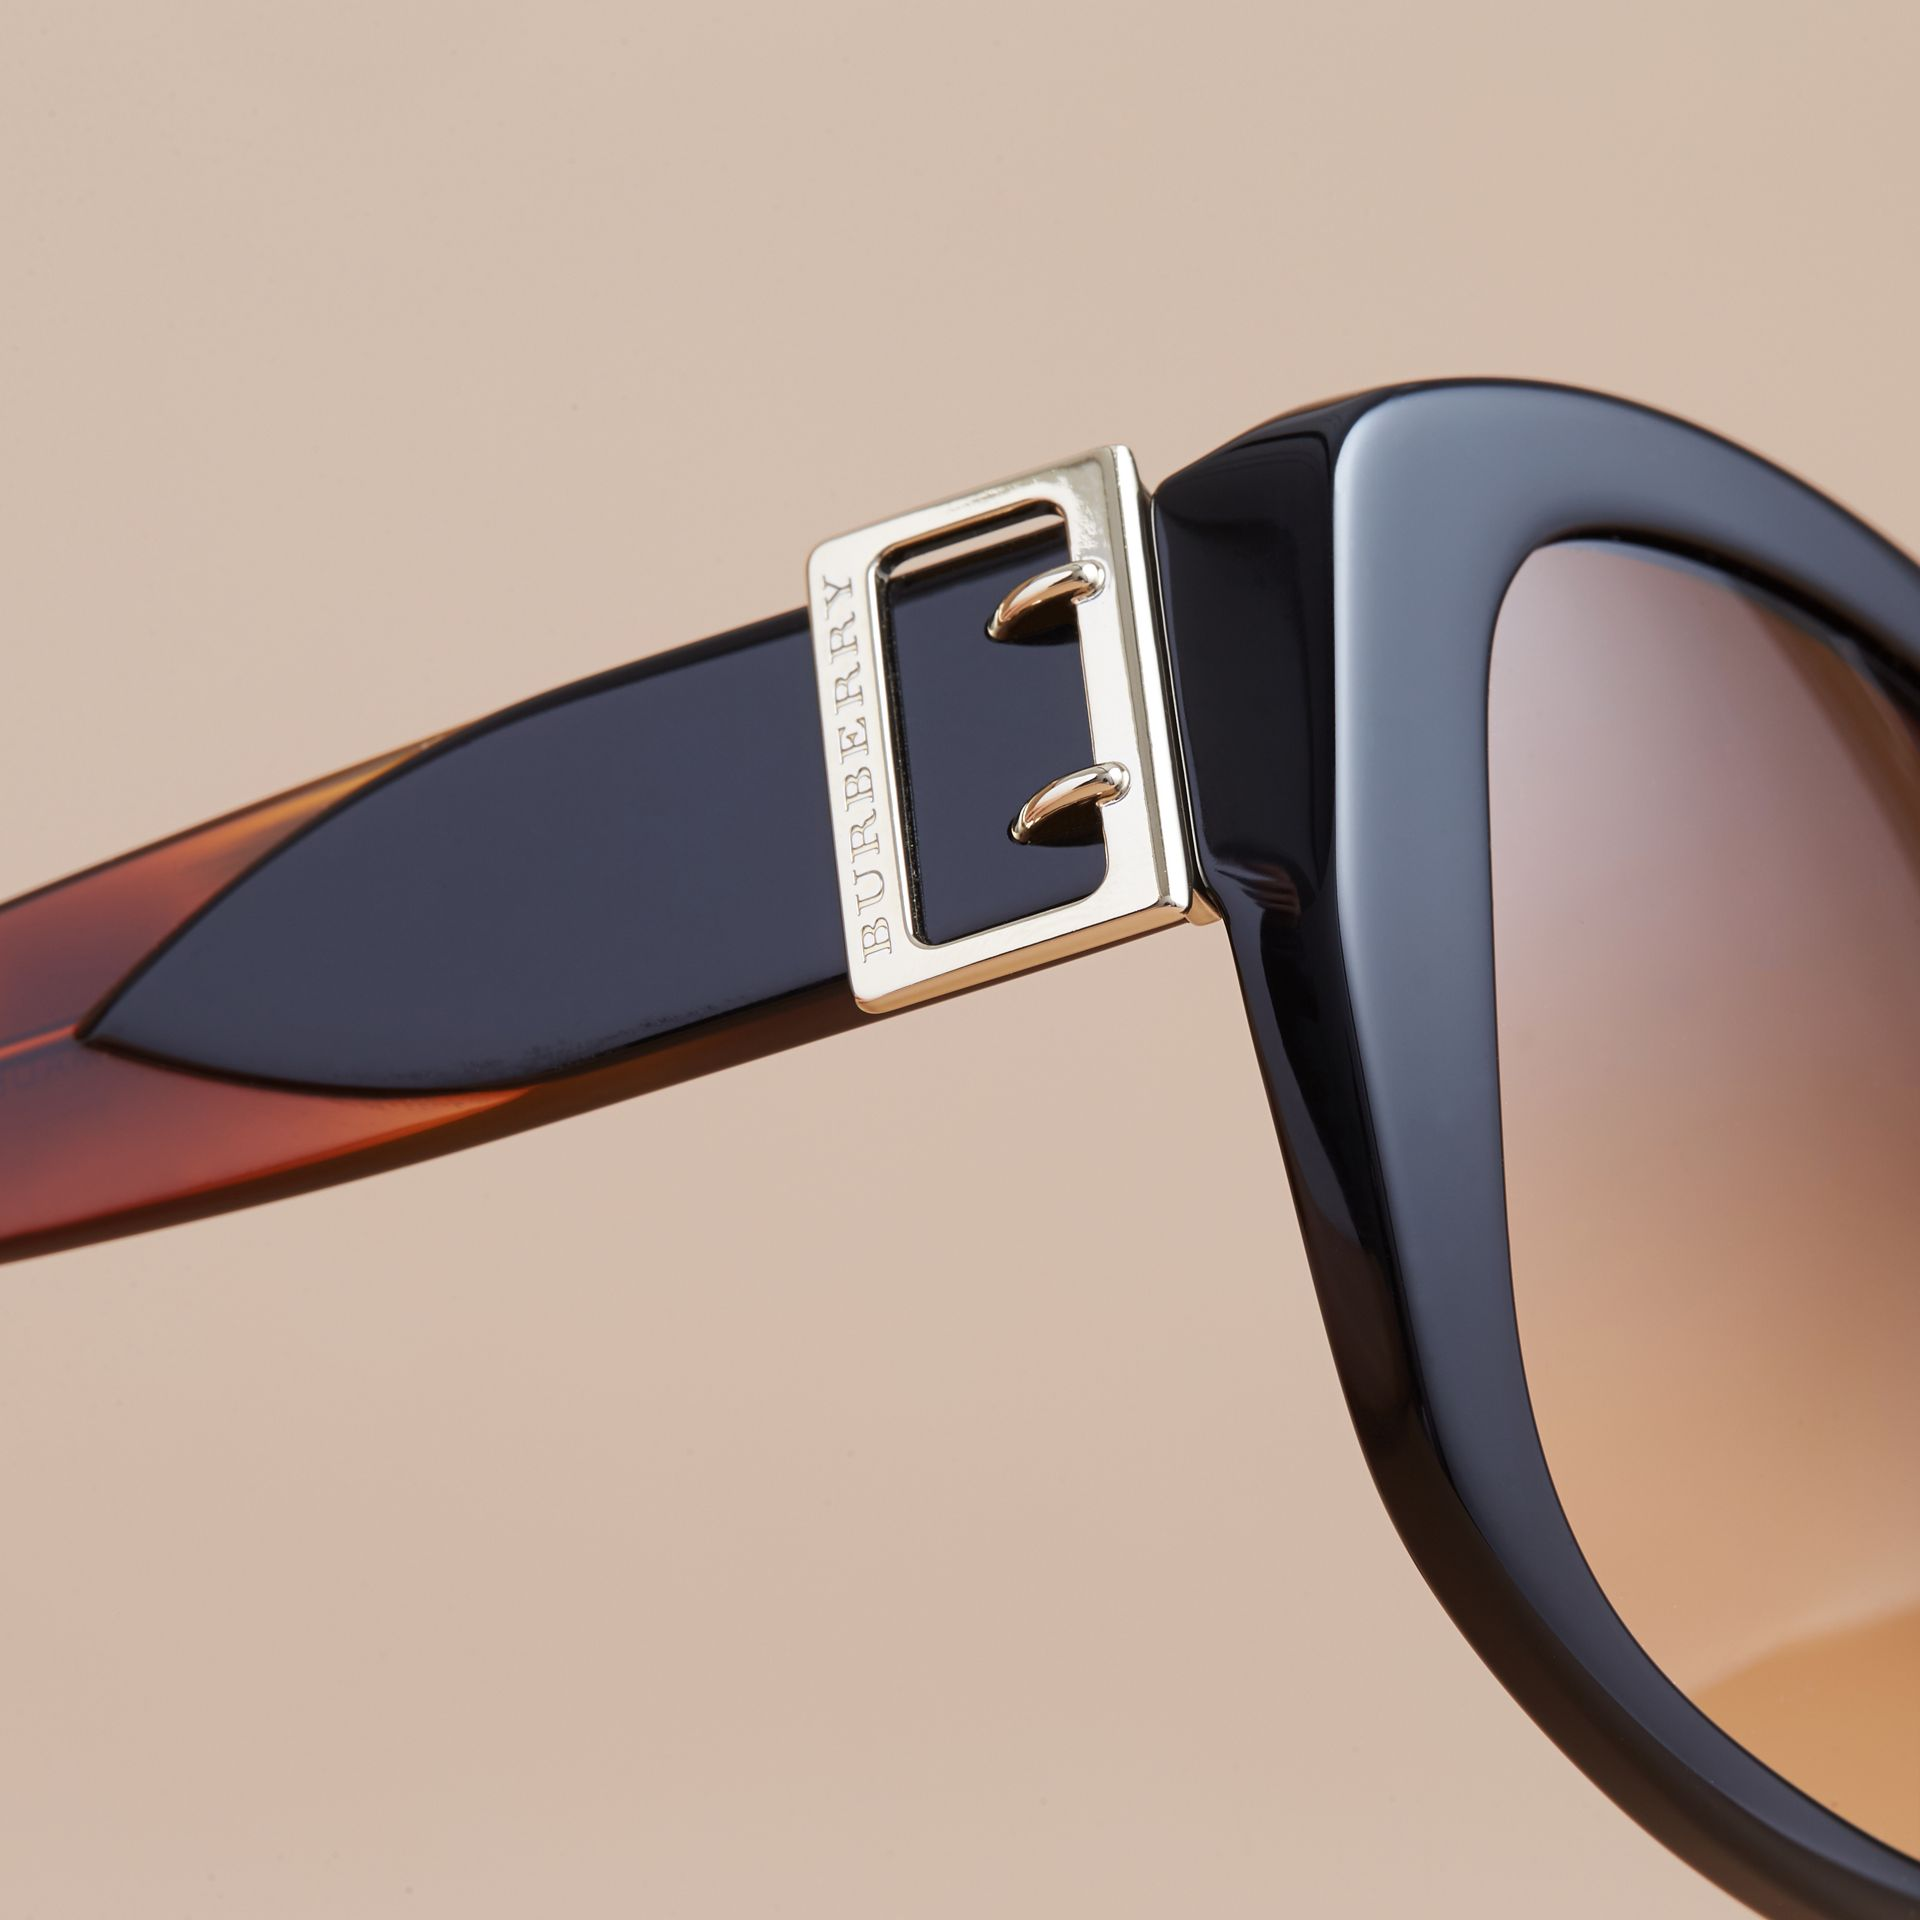 Buckle Detail Oversize Square Frame Sunglasses in Black - Women | Burberry Canada - gallery image 1